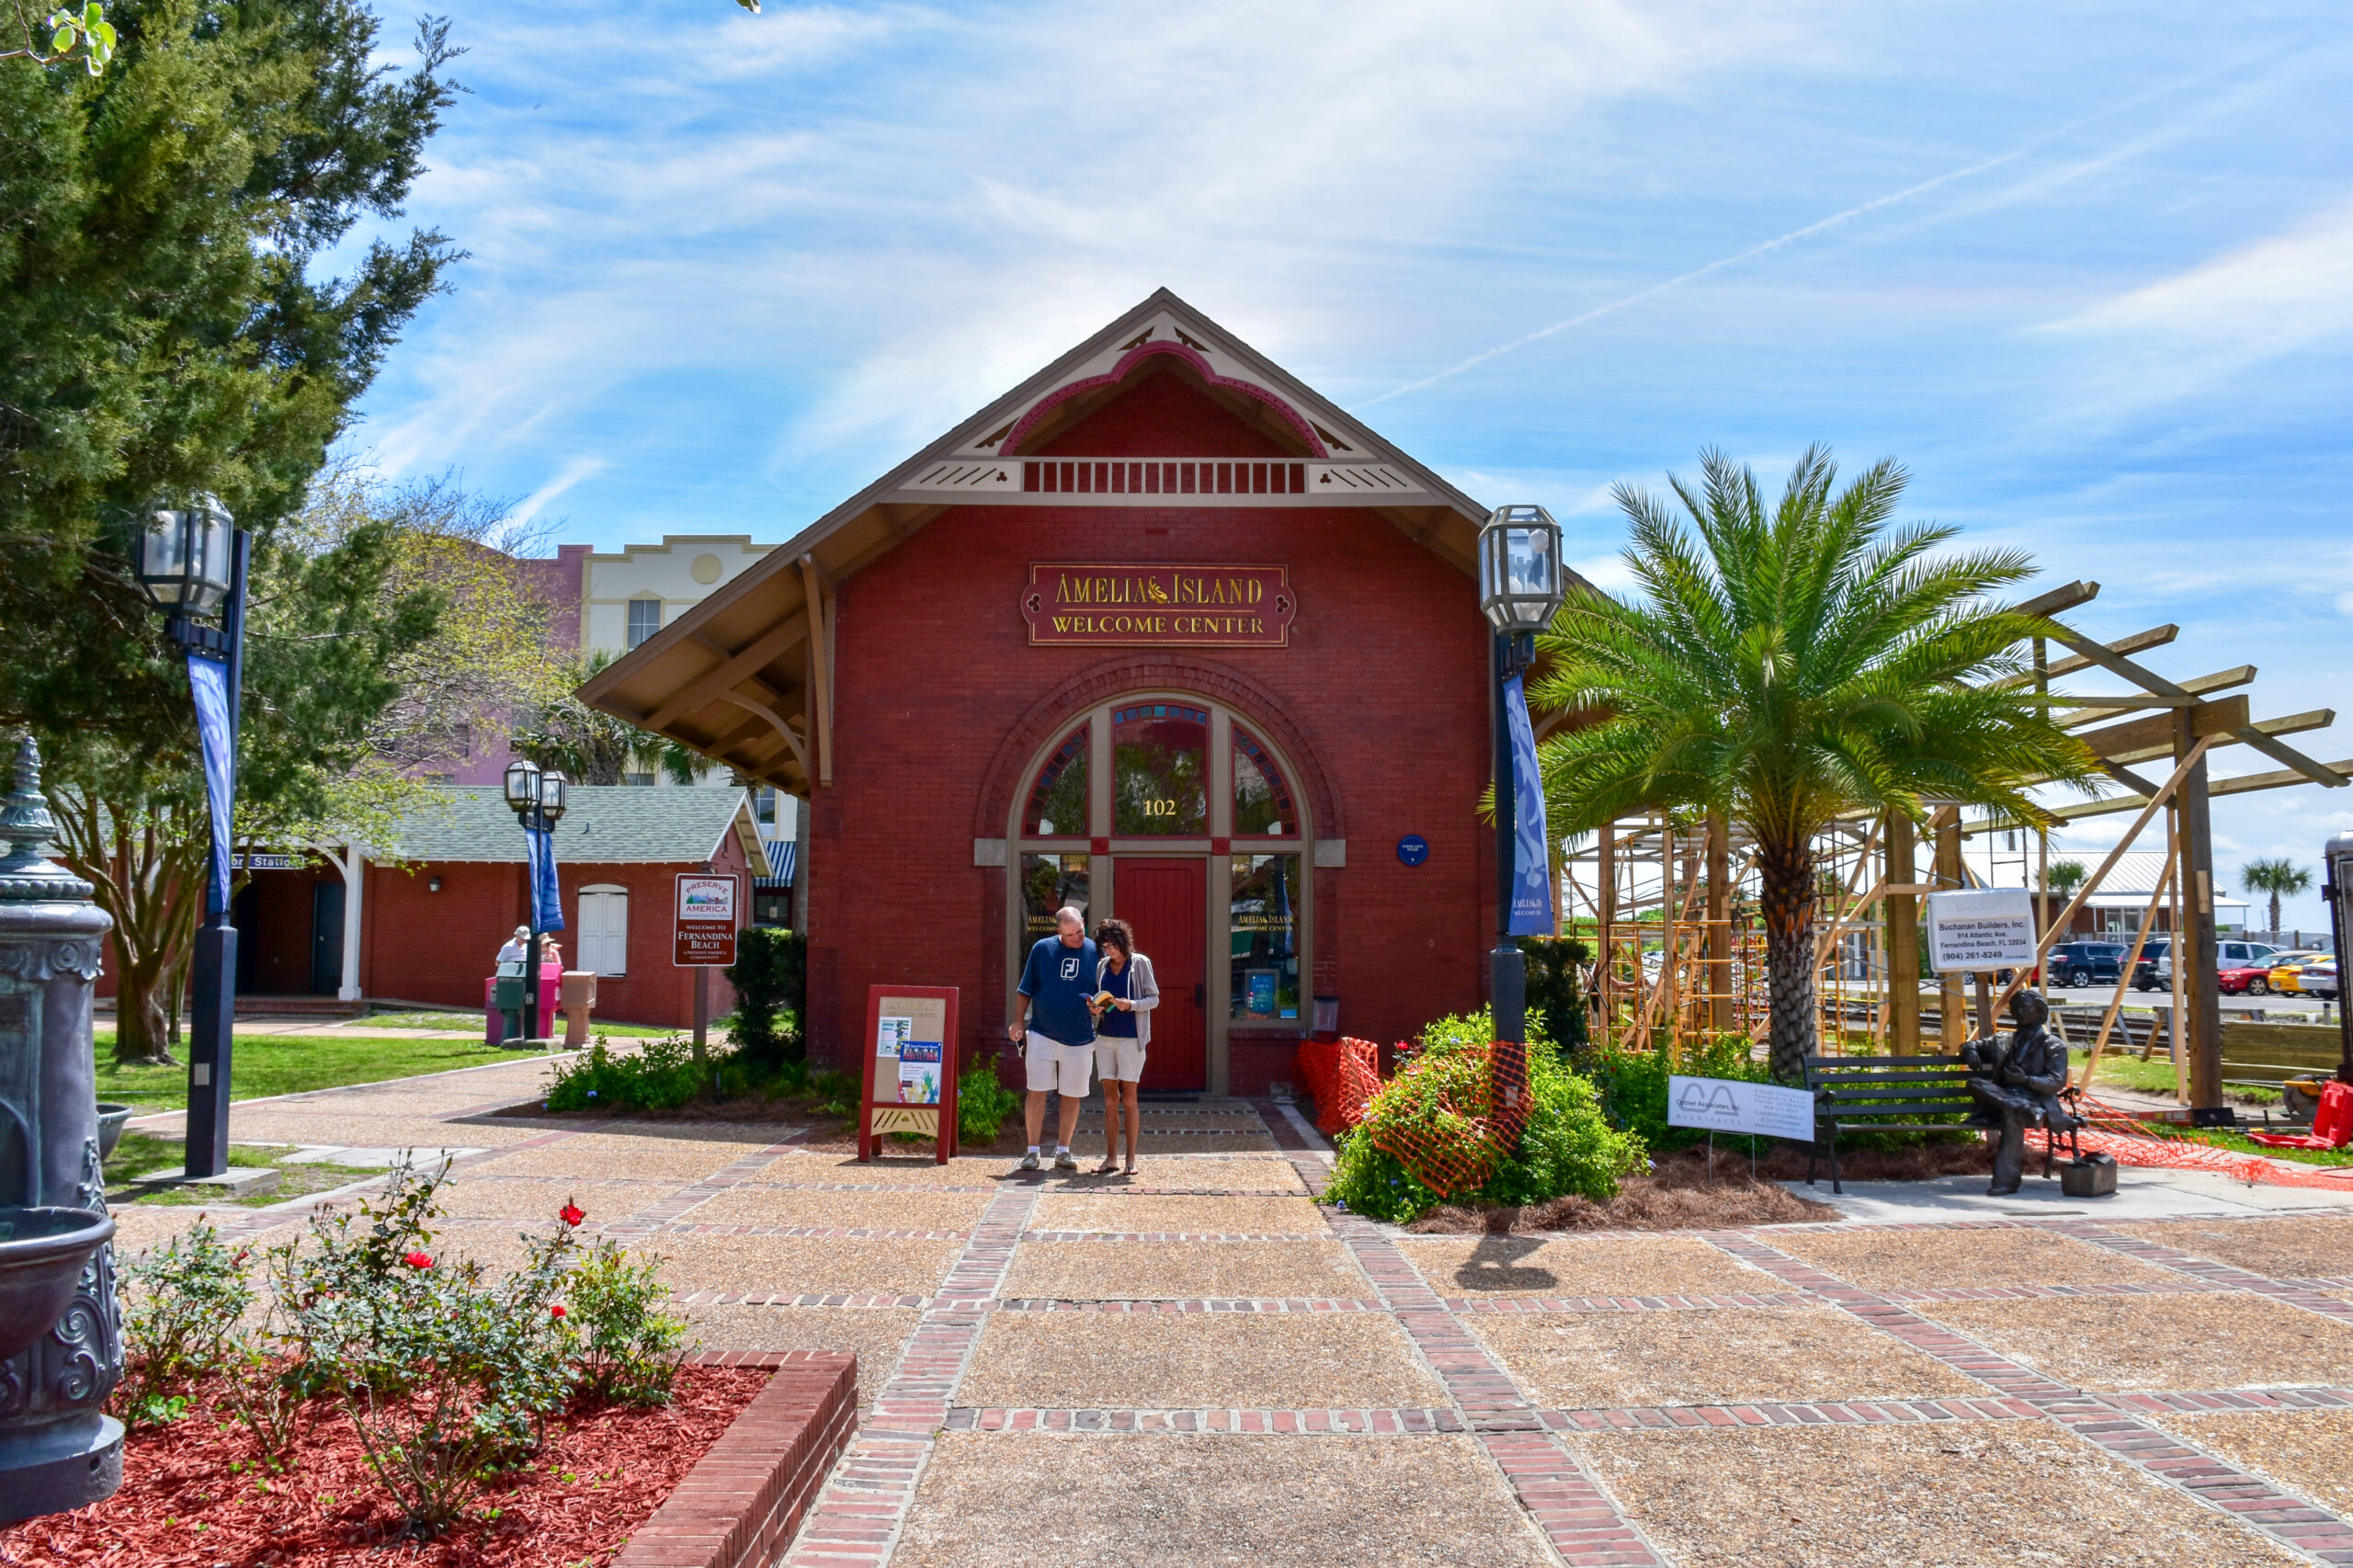 A couple standing in front of the Welcome Center at Amelia Island, Florida, set off to explore the town. Editorial credit: Joanne Dale / Shutterstock.com, licensed.